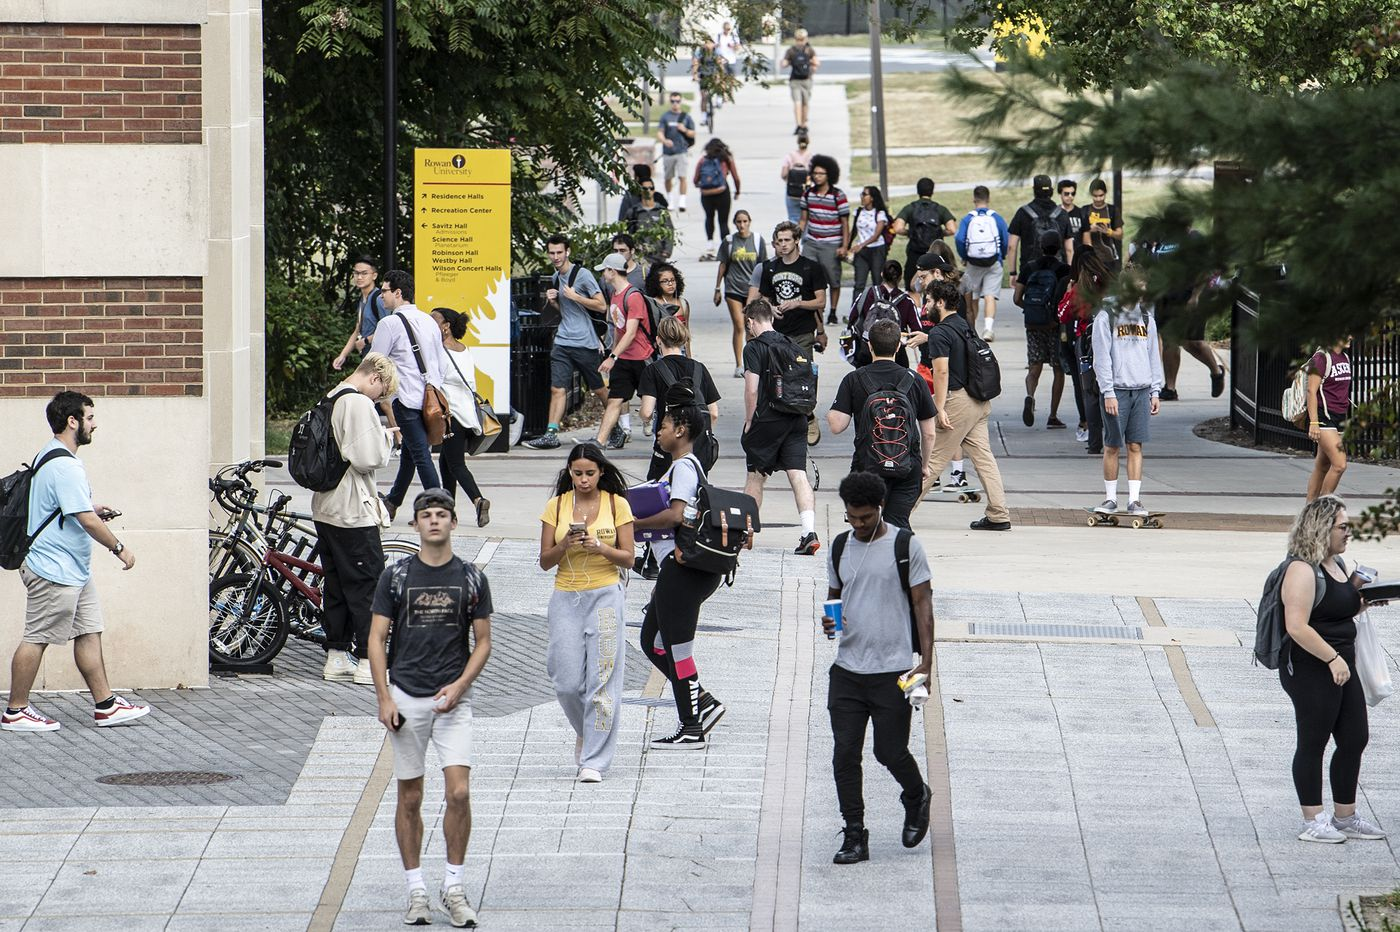 As colleges compete for fewer students, the pressure rises to meet enrollment targets